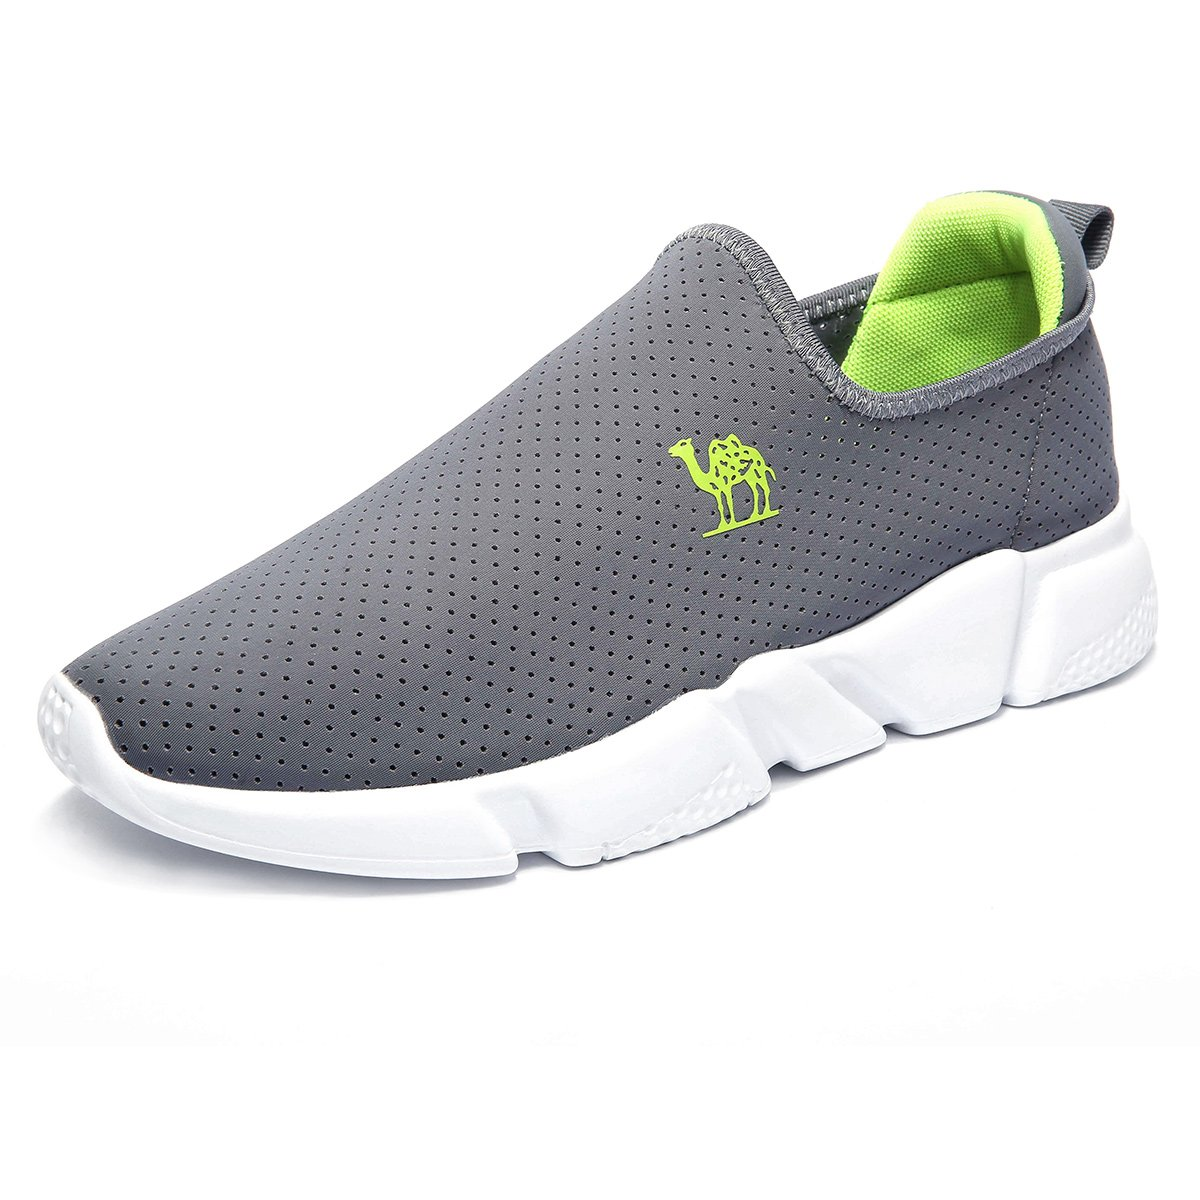 Camel Lightweight Walking Shoes for Men Slip On Sneakers for Running Hiking Casual Sports Fashion Sneakers